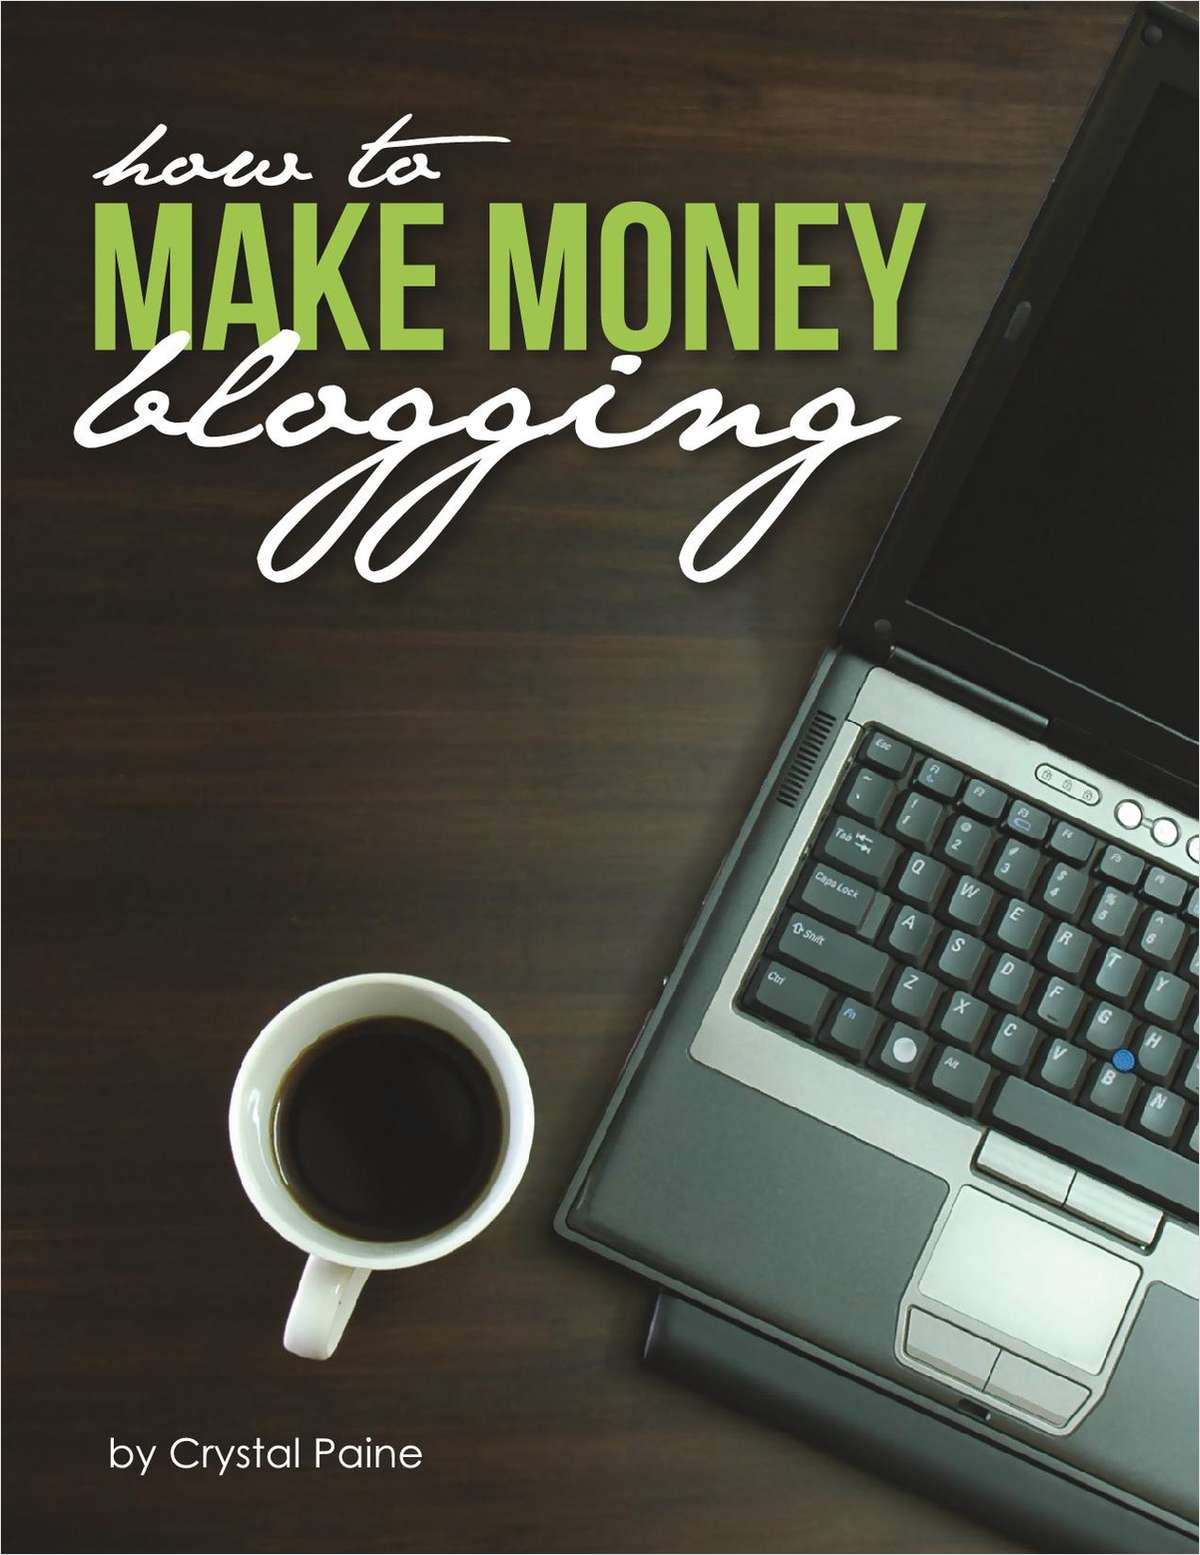 How to Make Money Blogging (Free eBook!)